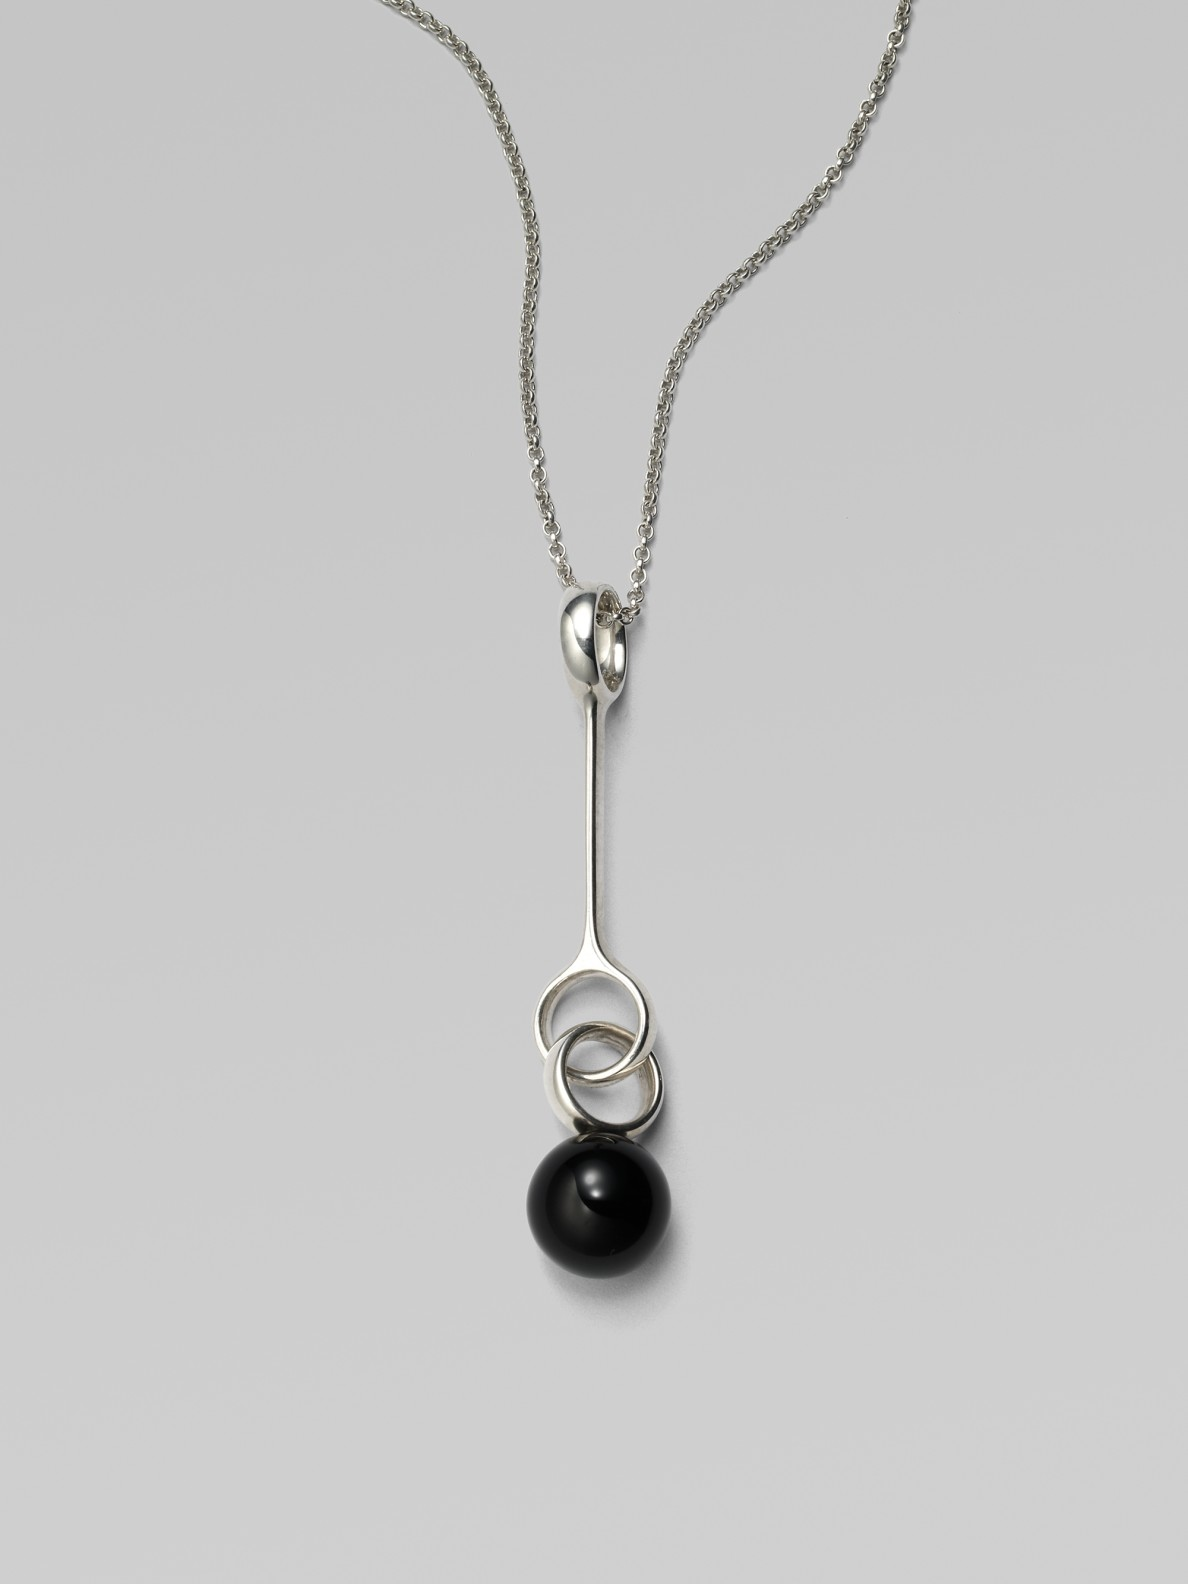 Silver Ball Georg Jensen Pendant Of The Year 2011 w